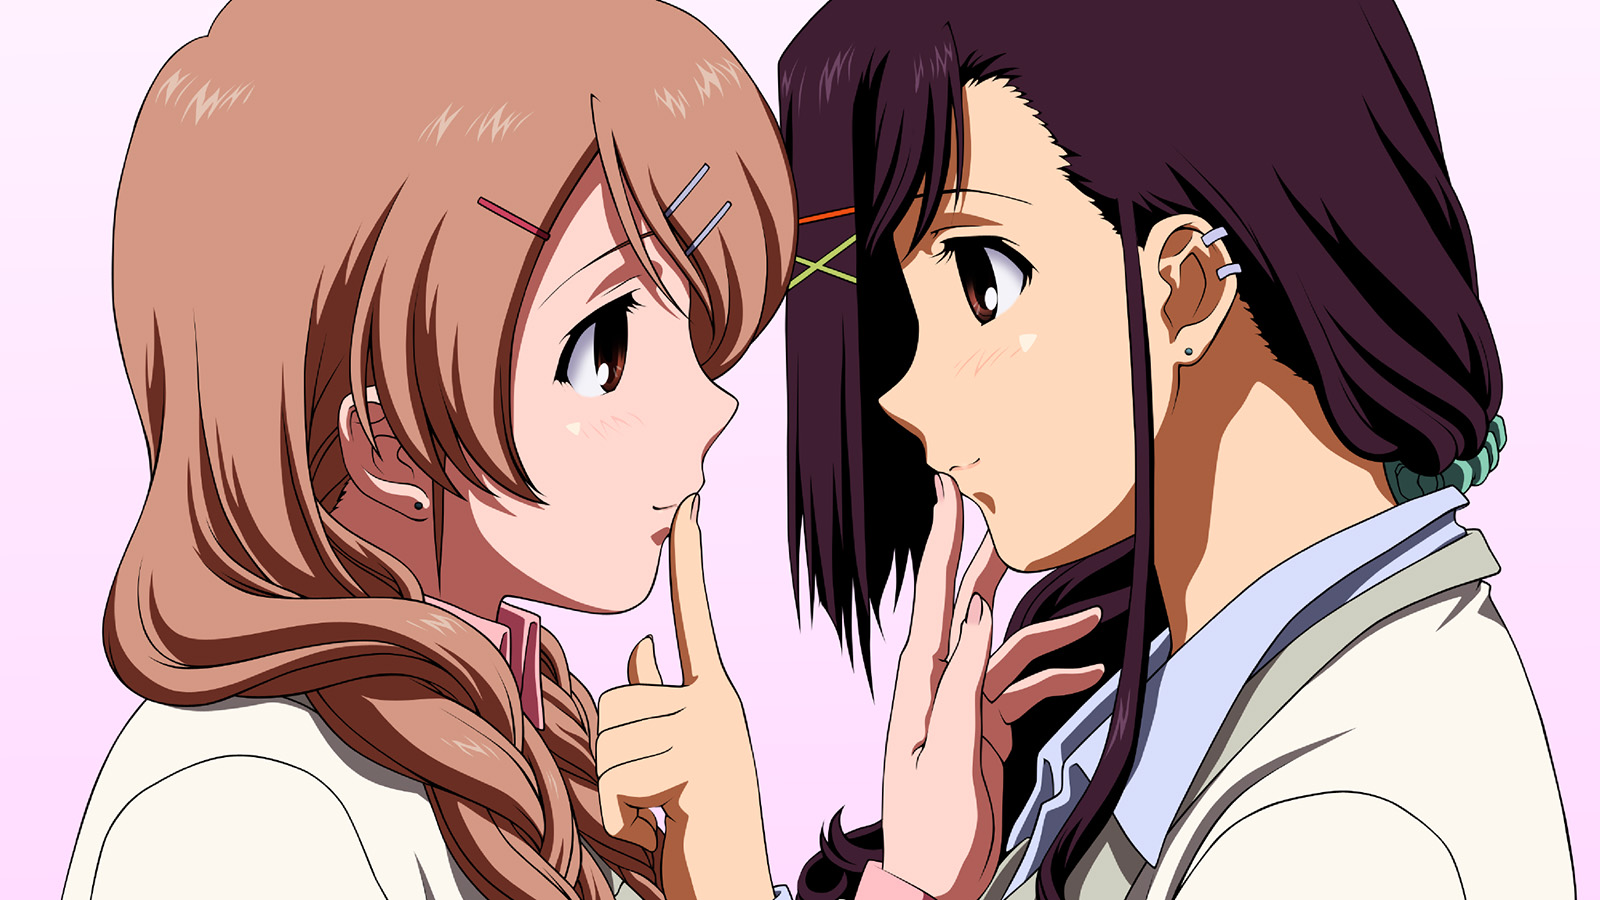 Top 20 best yuri anime series recommend me anime